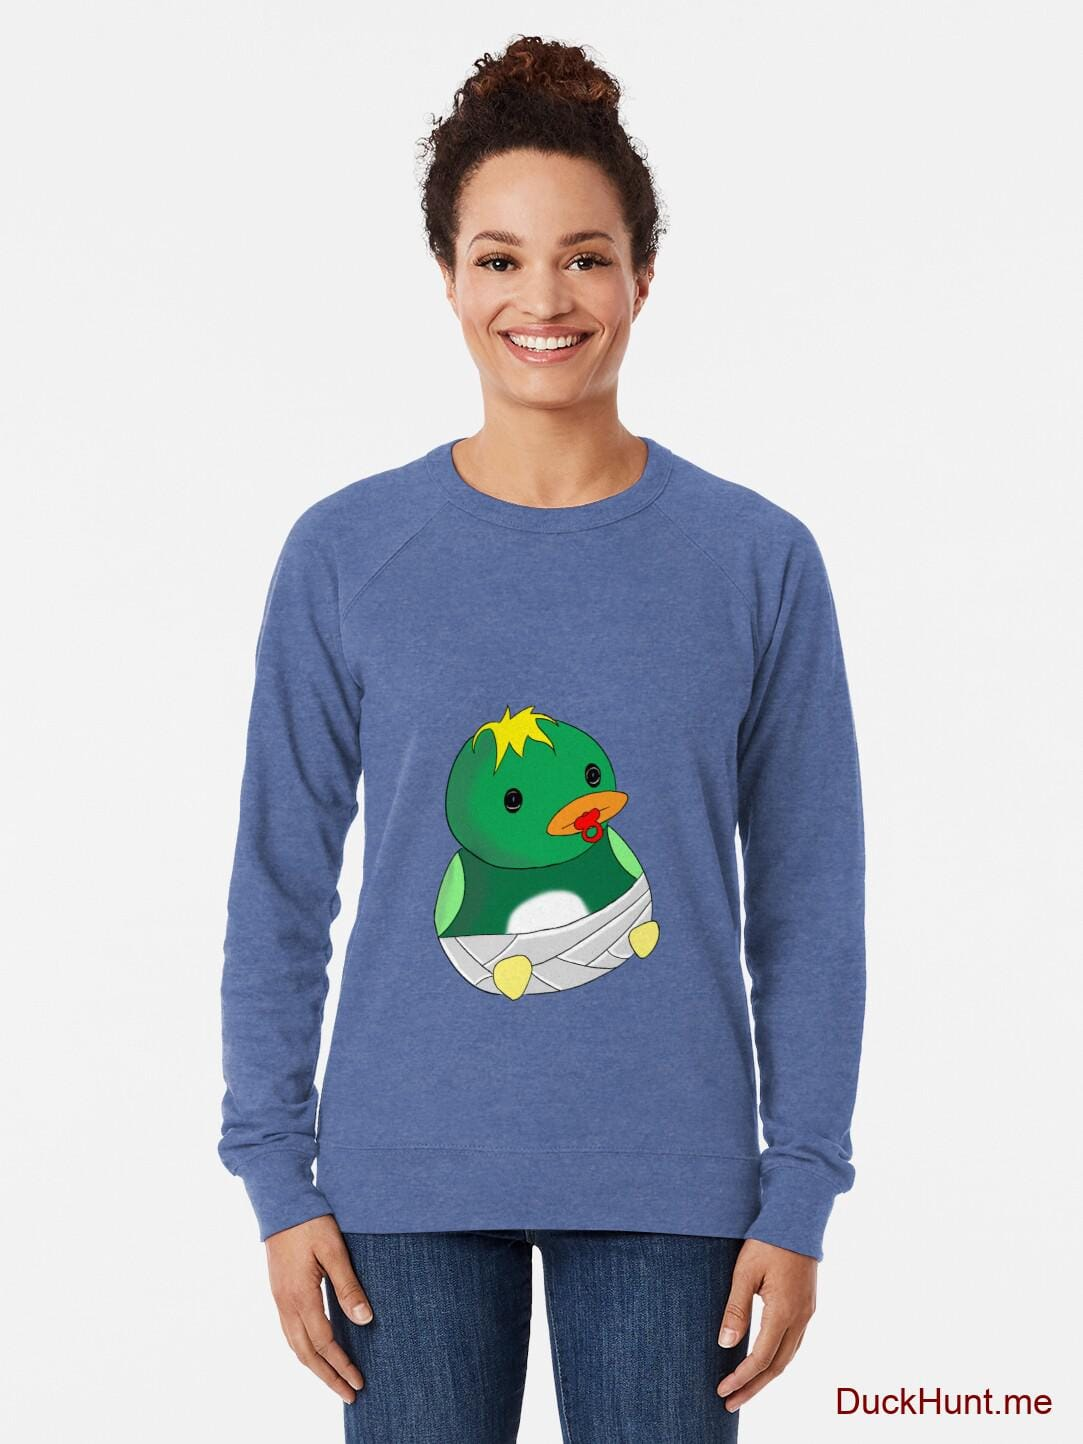 Baby duck Royal Lightweight Sweatshirt alternative image 1